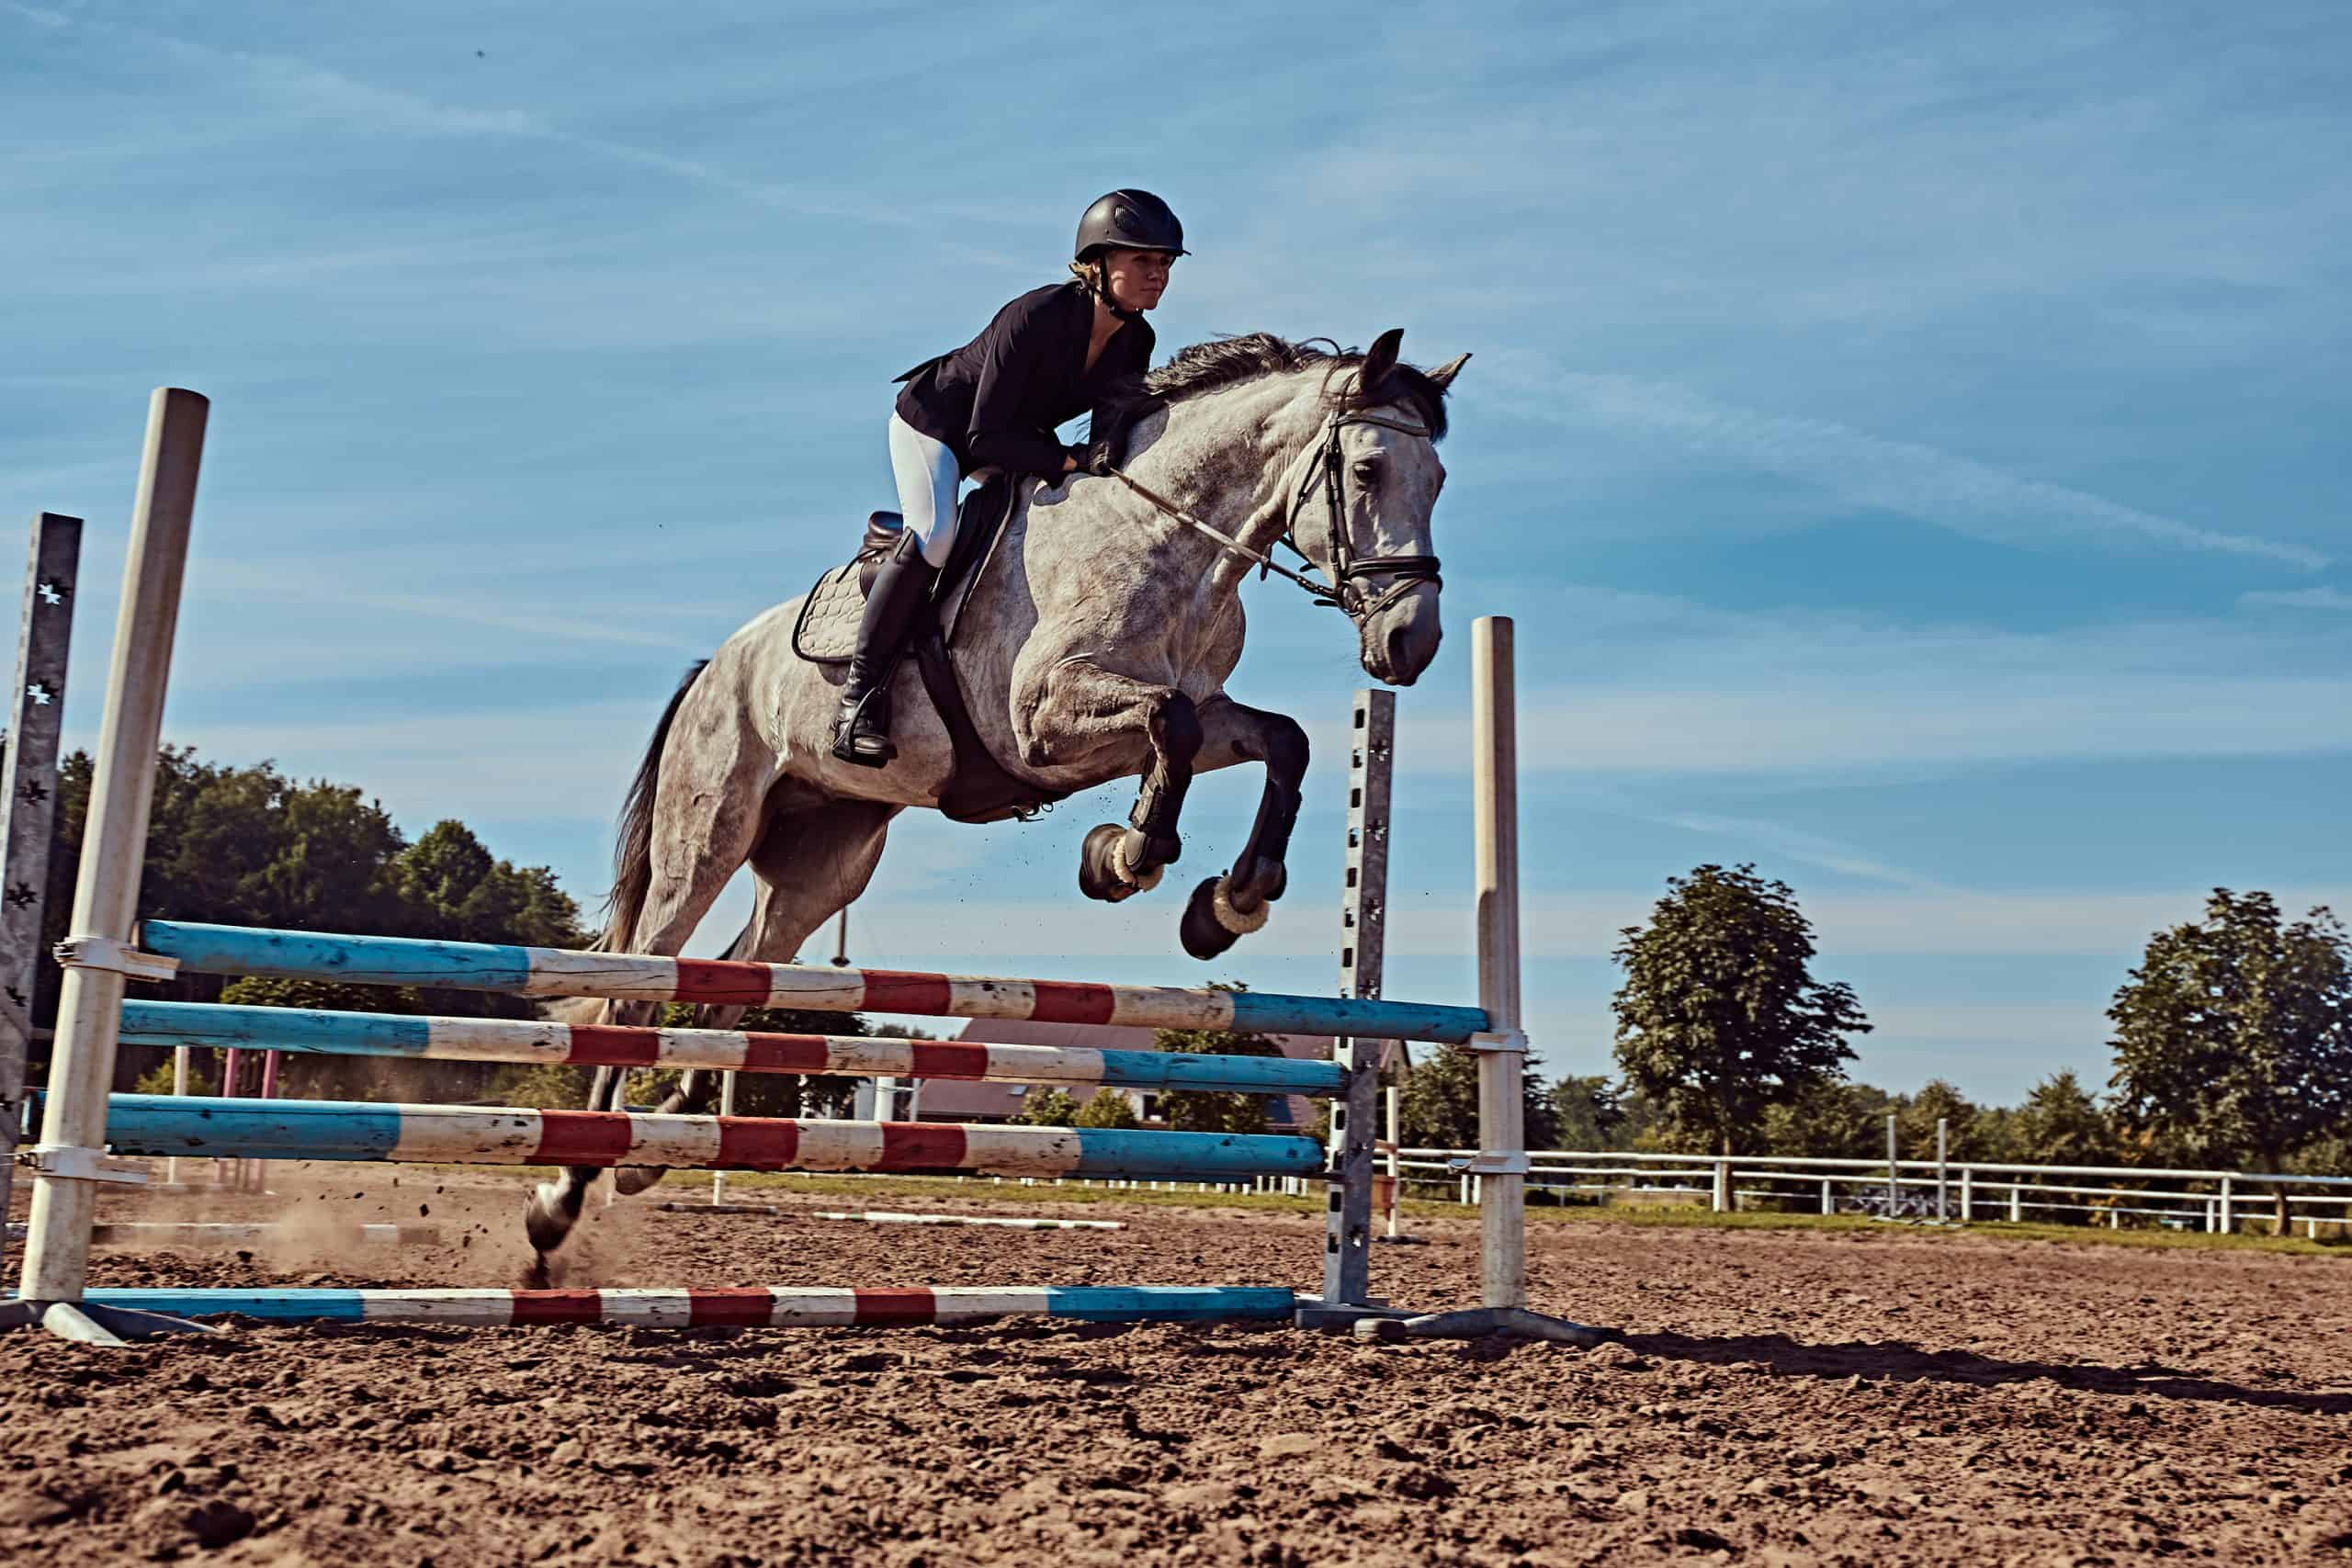 Young female jockey on dapple gray horse jumping over hurdle in the open arena.